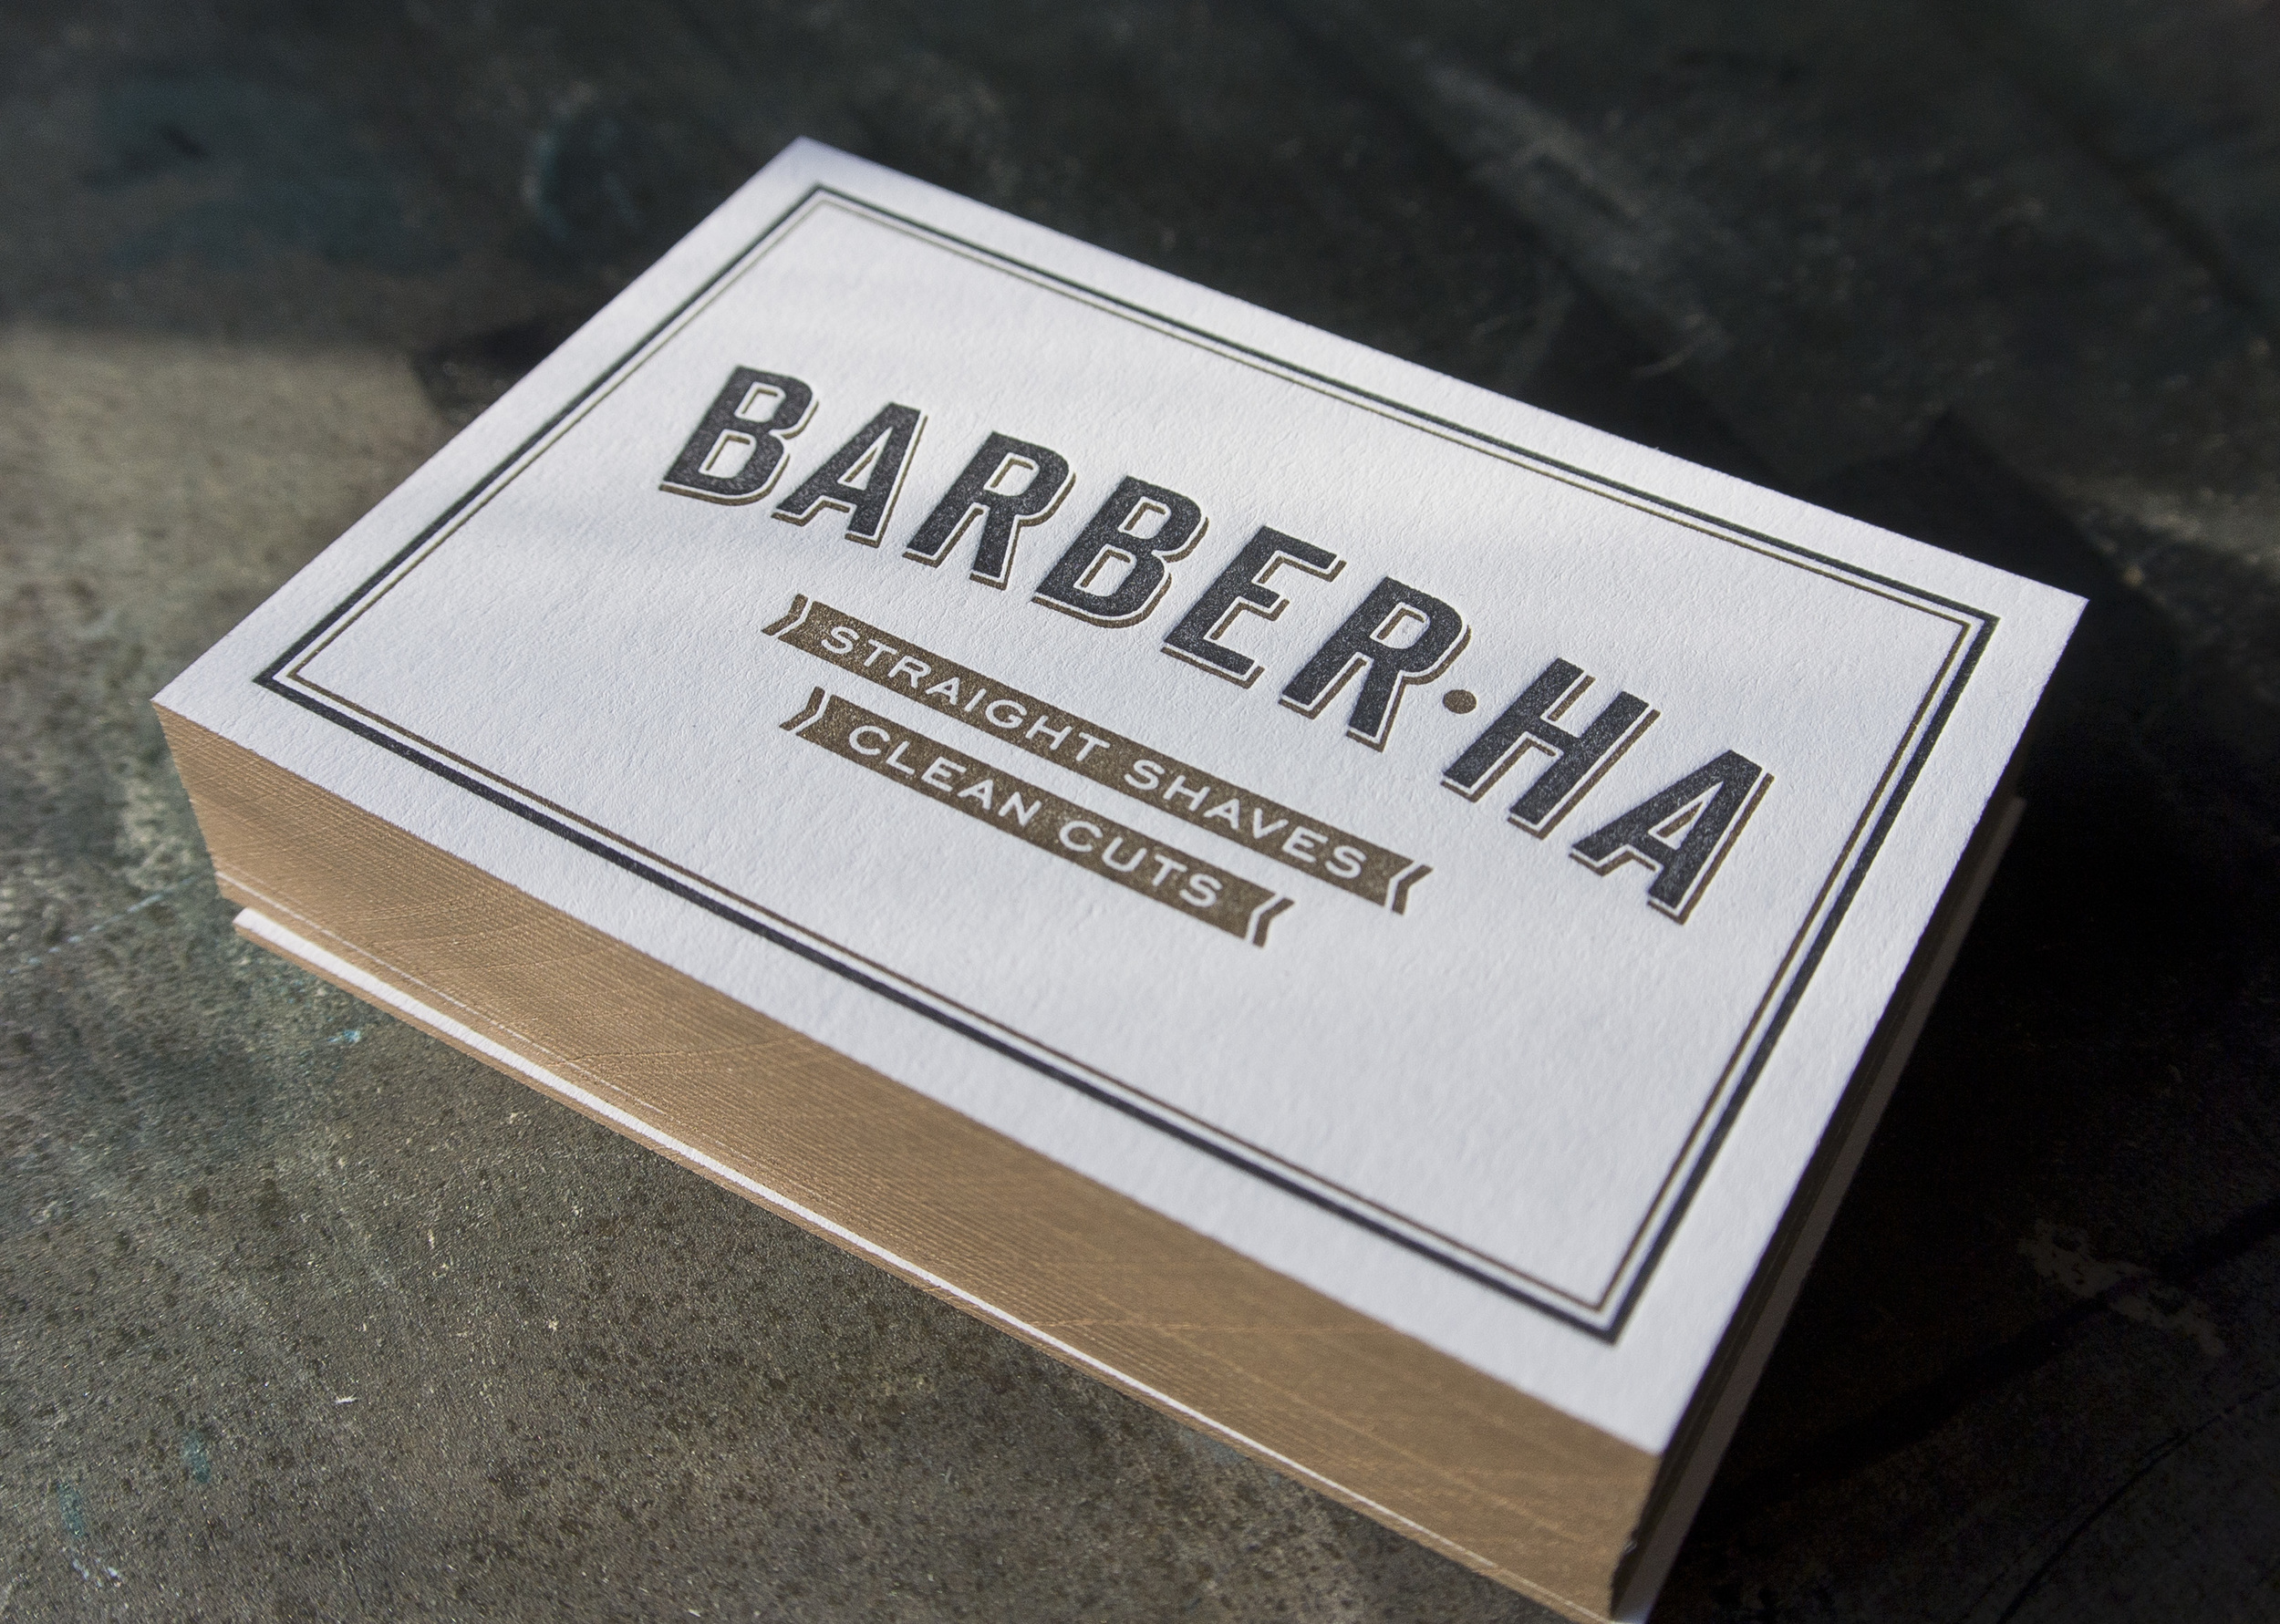 Barber Ha Business Cards — Fort Heavy